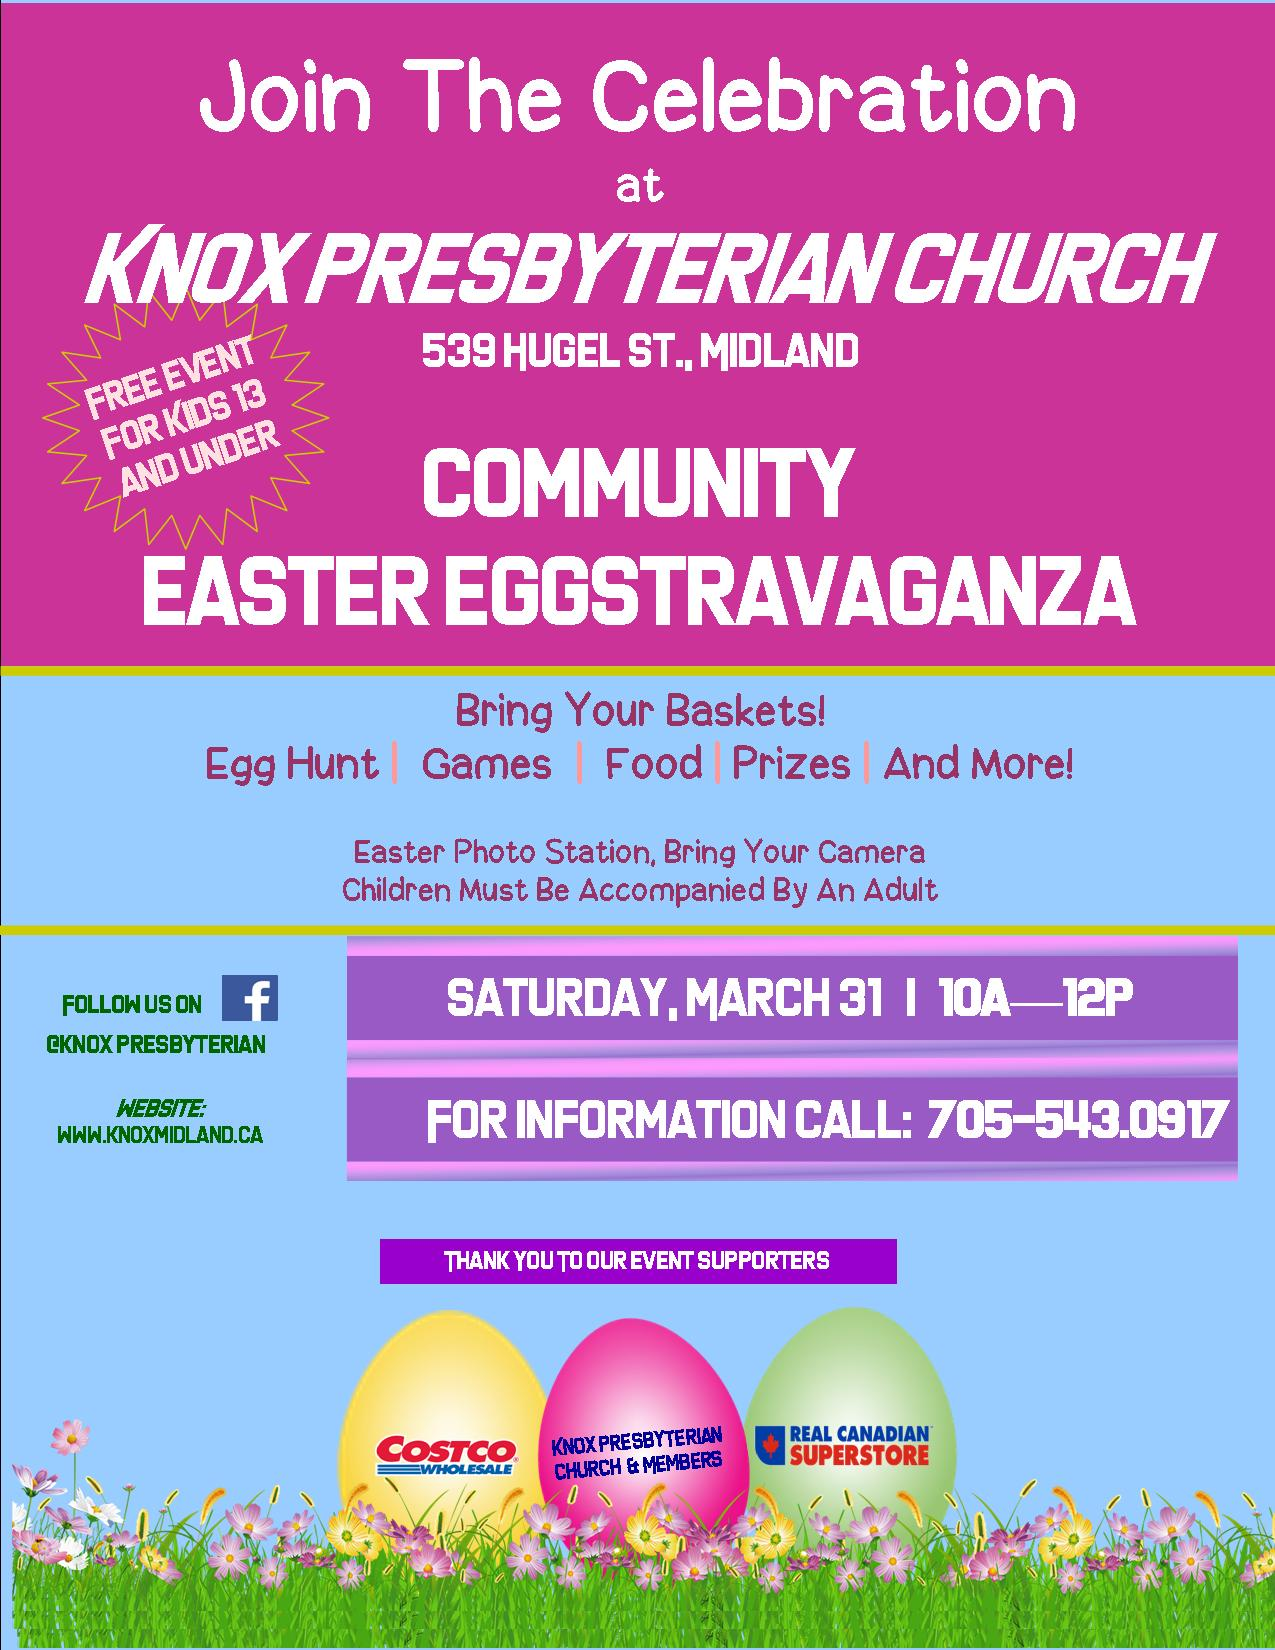 FAMILY FRIENDLY EASTER EGGSTRAVAGANZA!